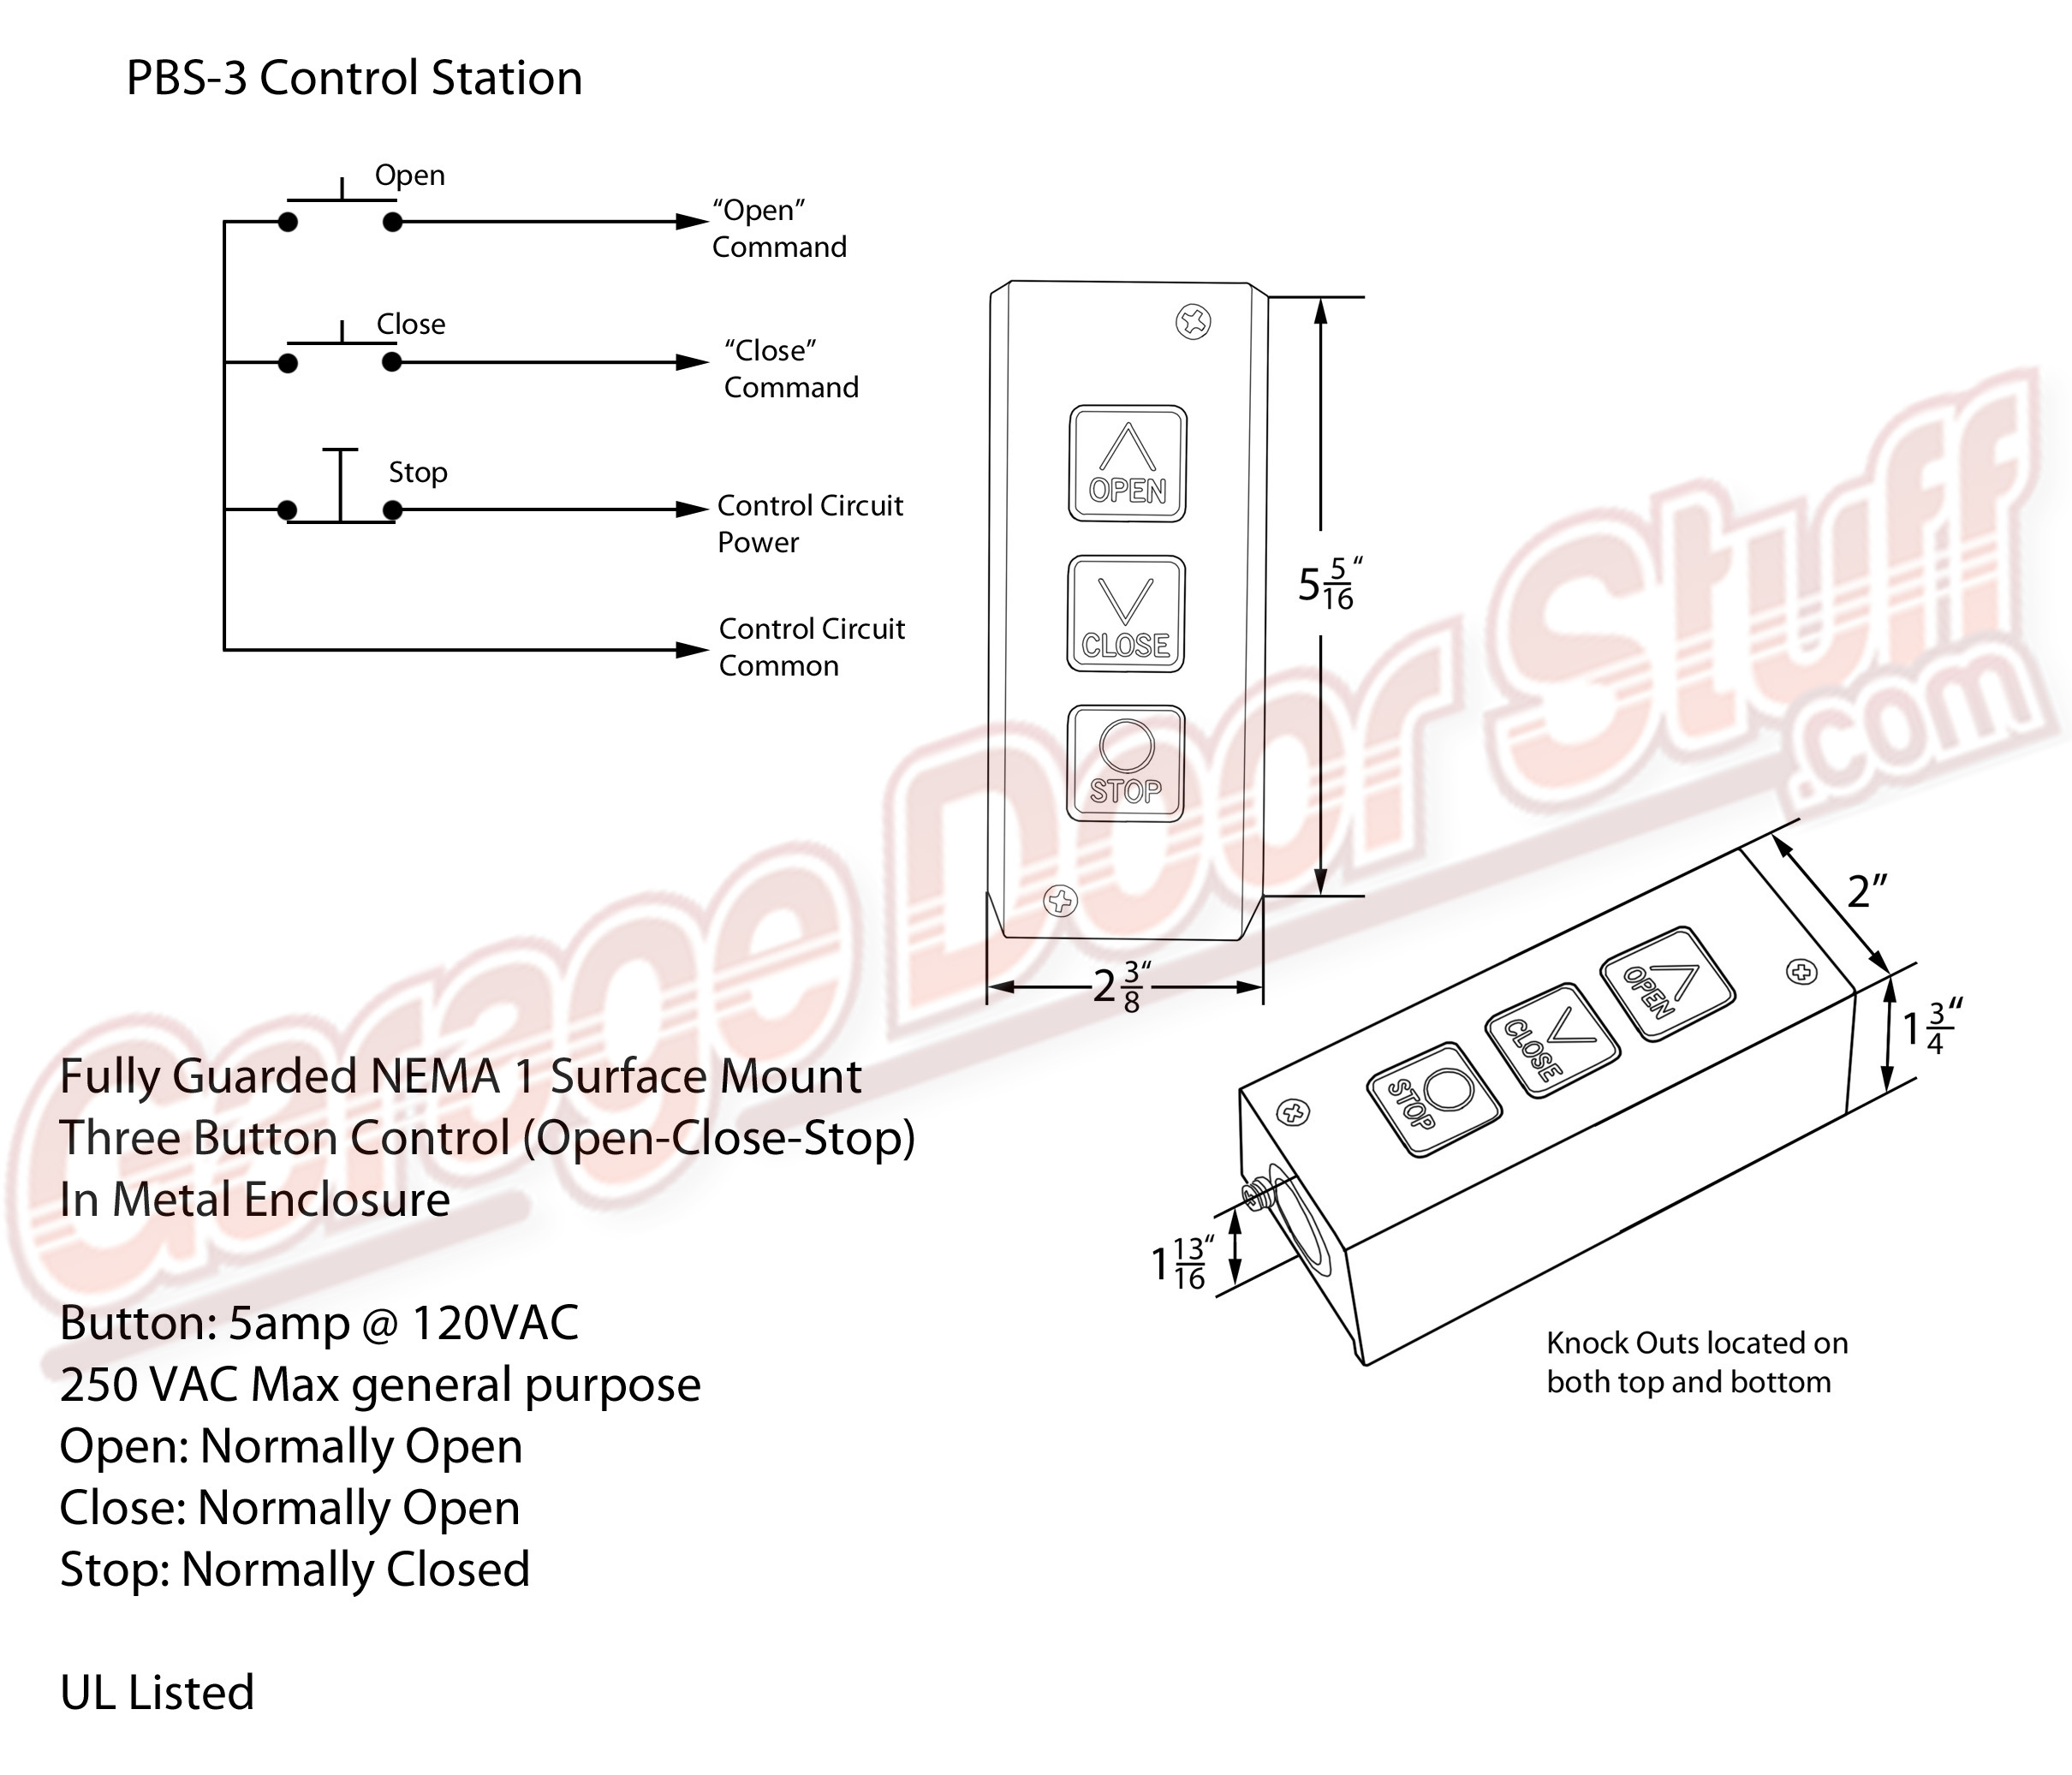 third switch overhead door open close stop control overhead door wiring diagrams at alyssarenee.co